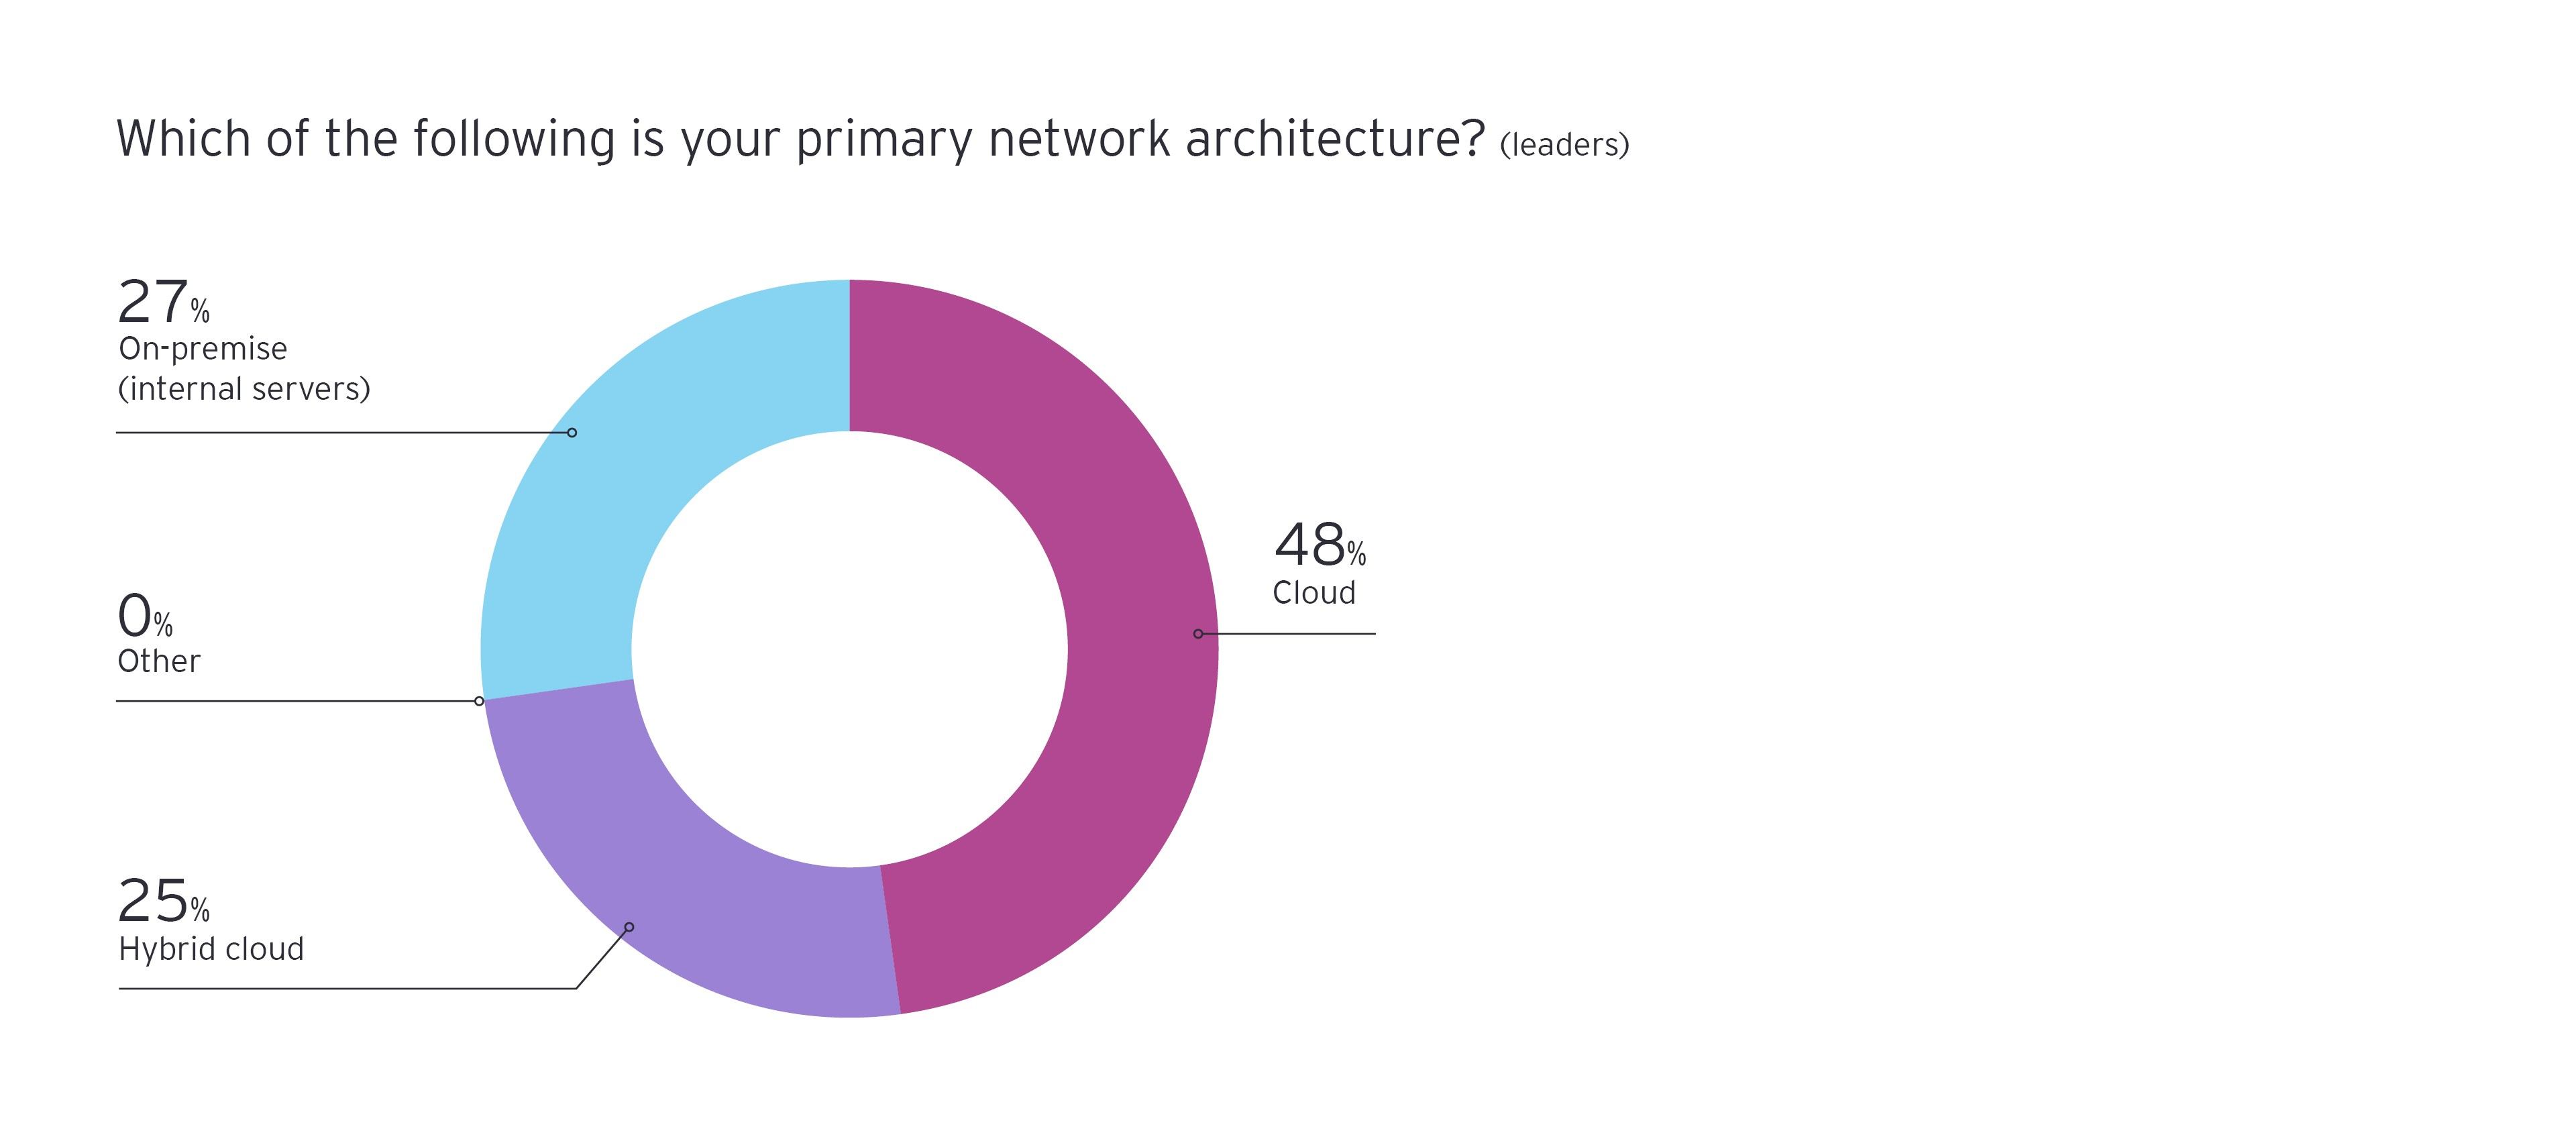 Which of the following is your primary network architecture